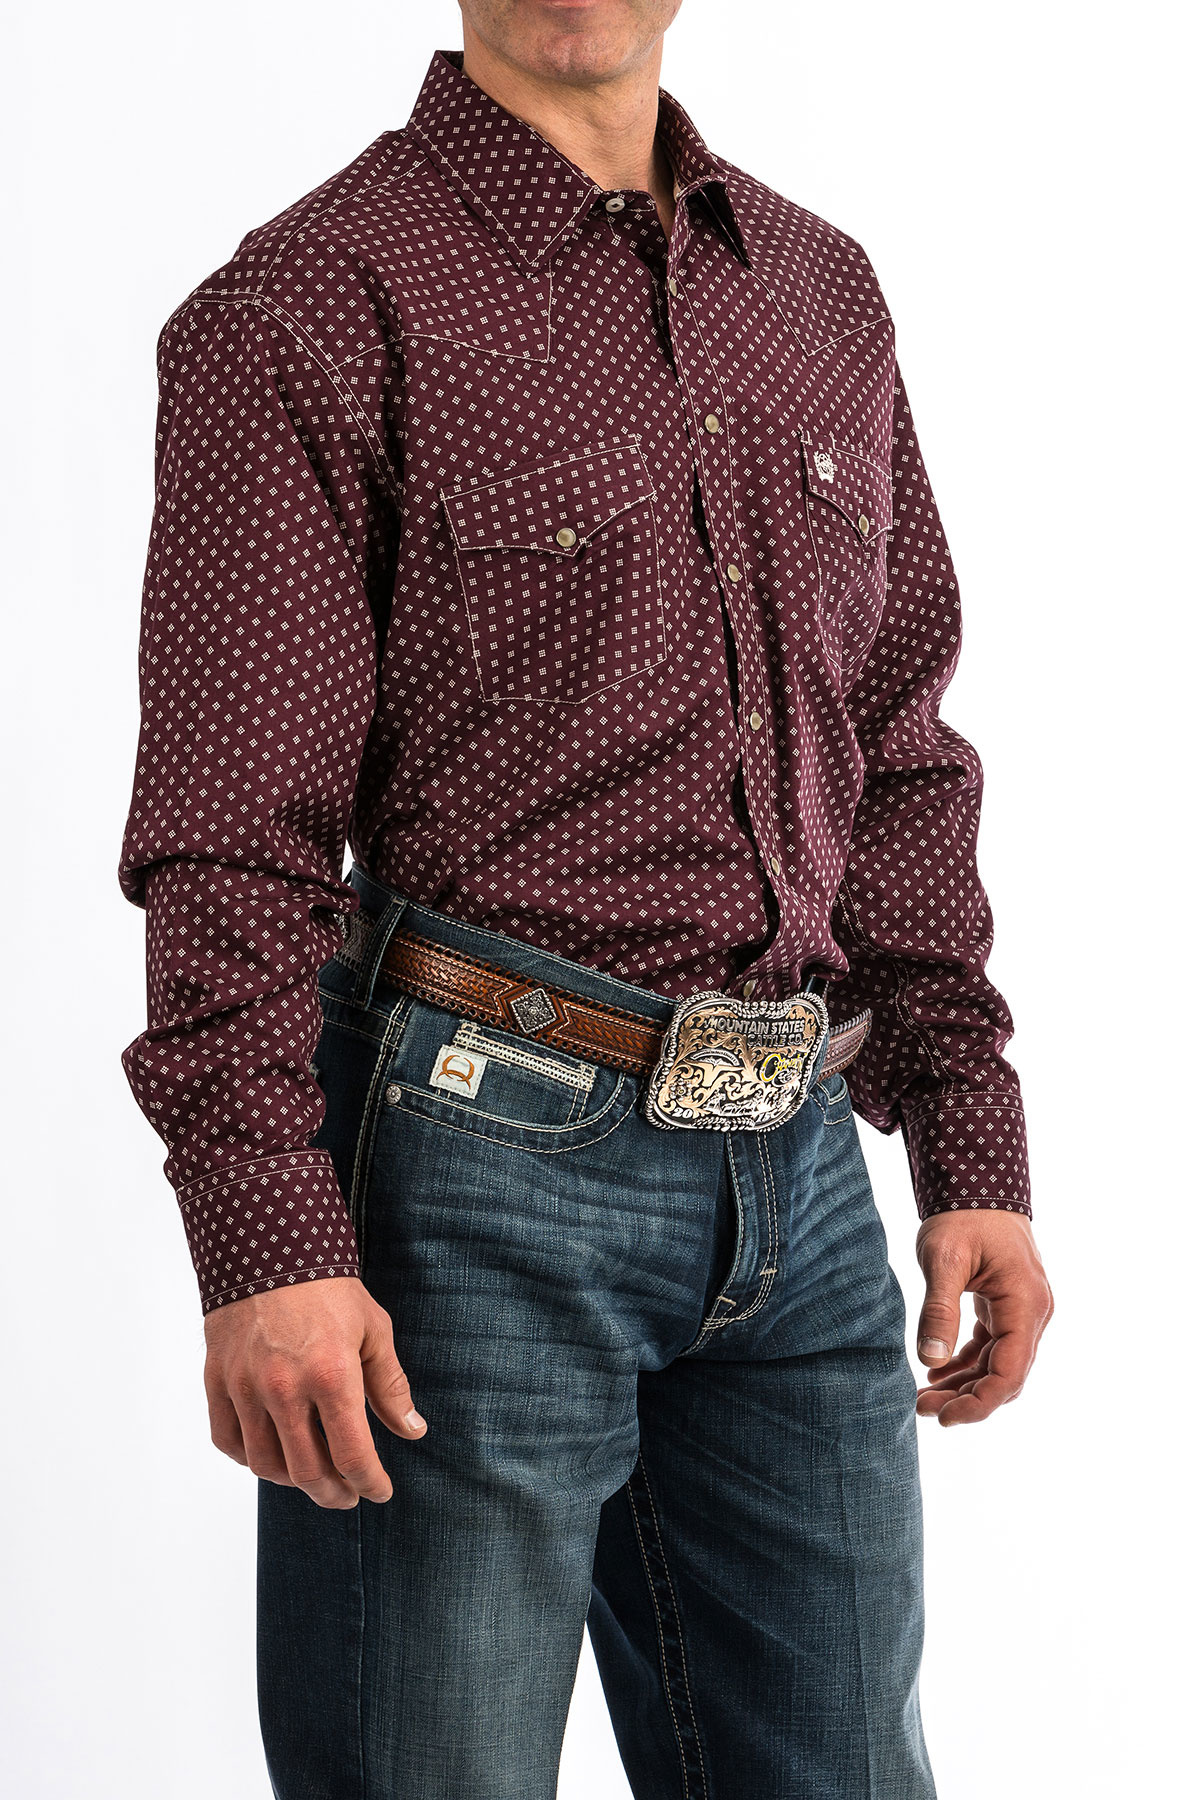 Cinch Cinch Modern Fit Maroon Square Peral Snap